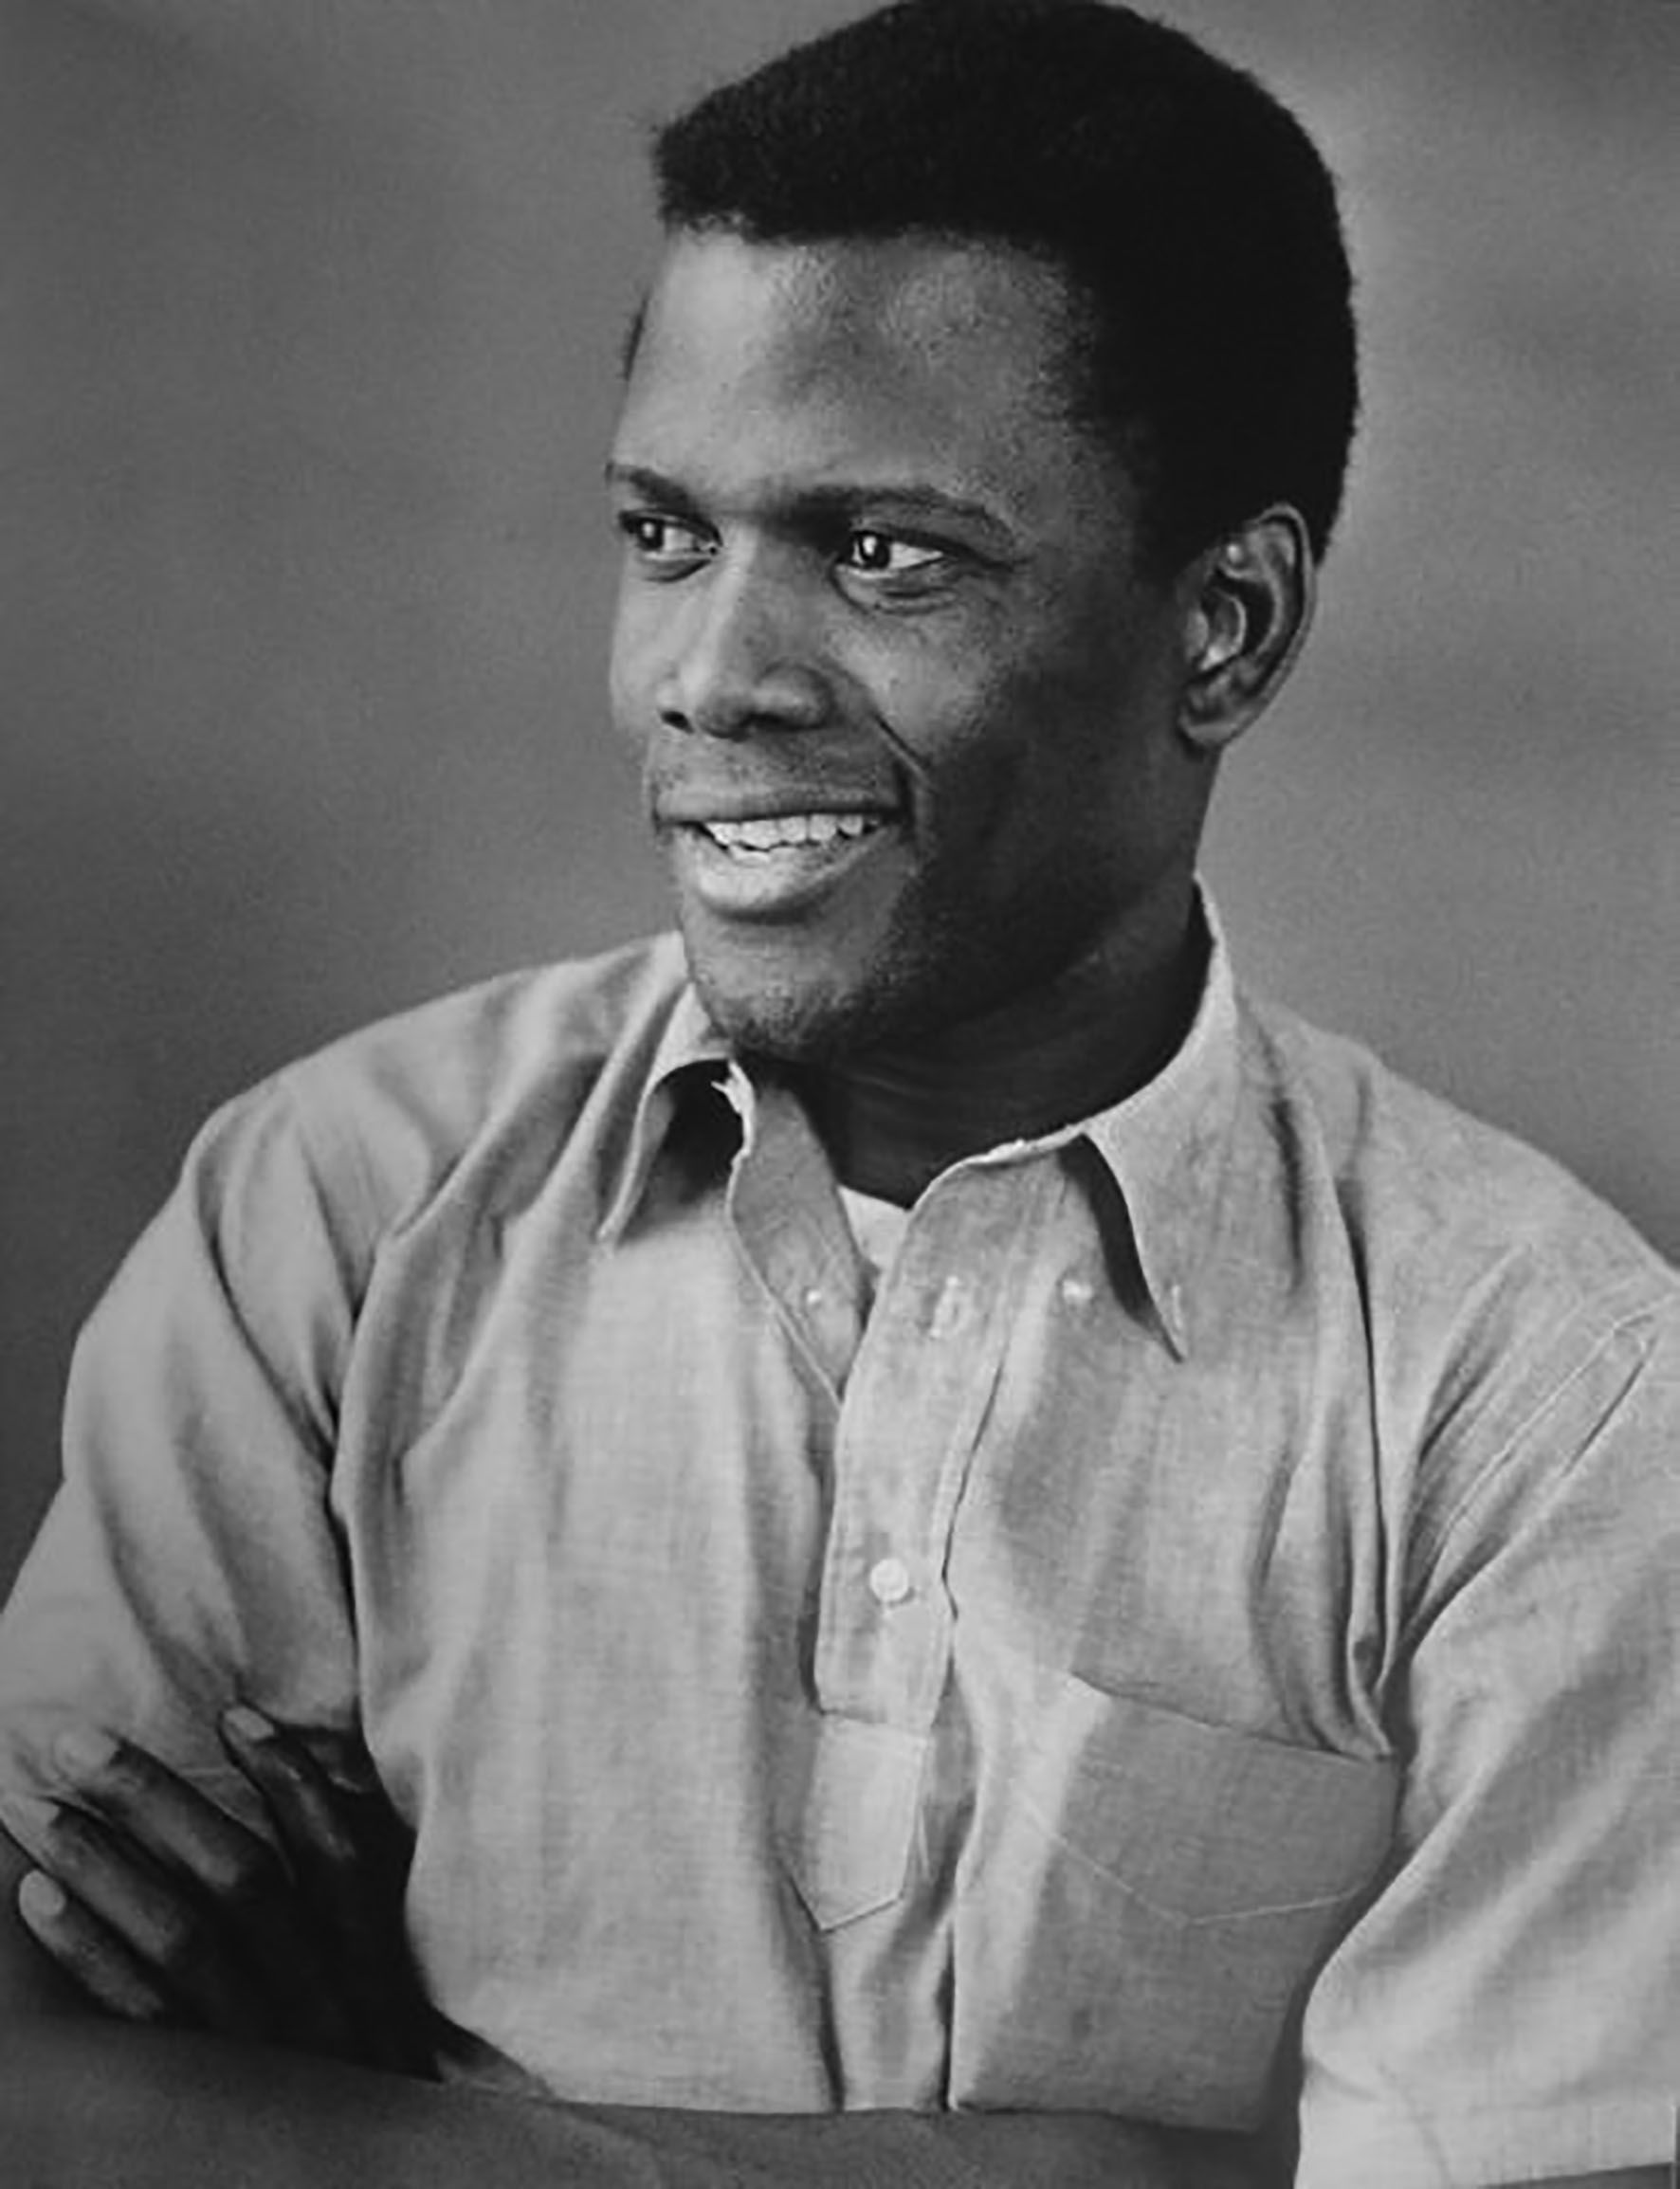 sidney poitier american actor iconic status here and